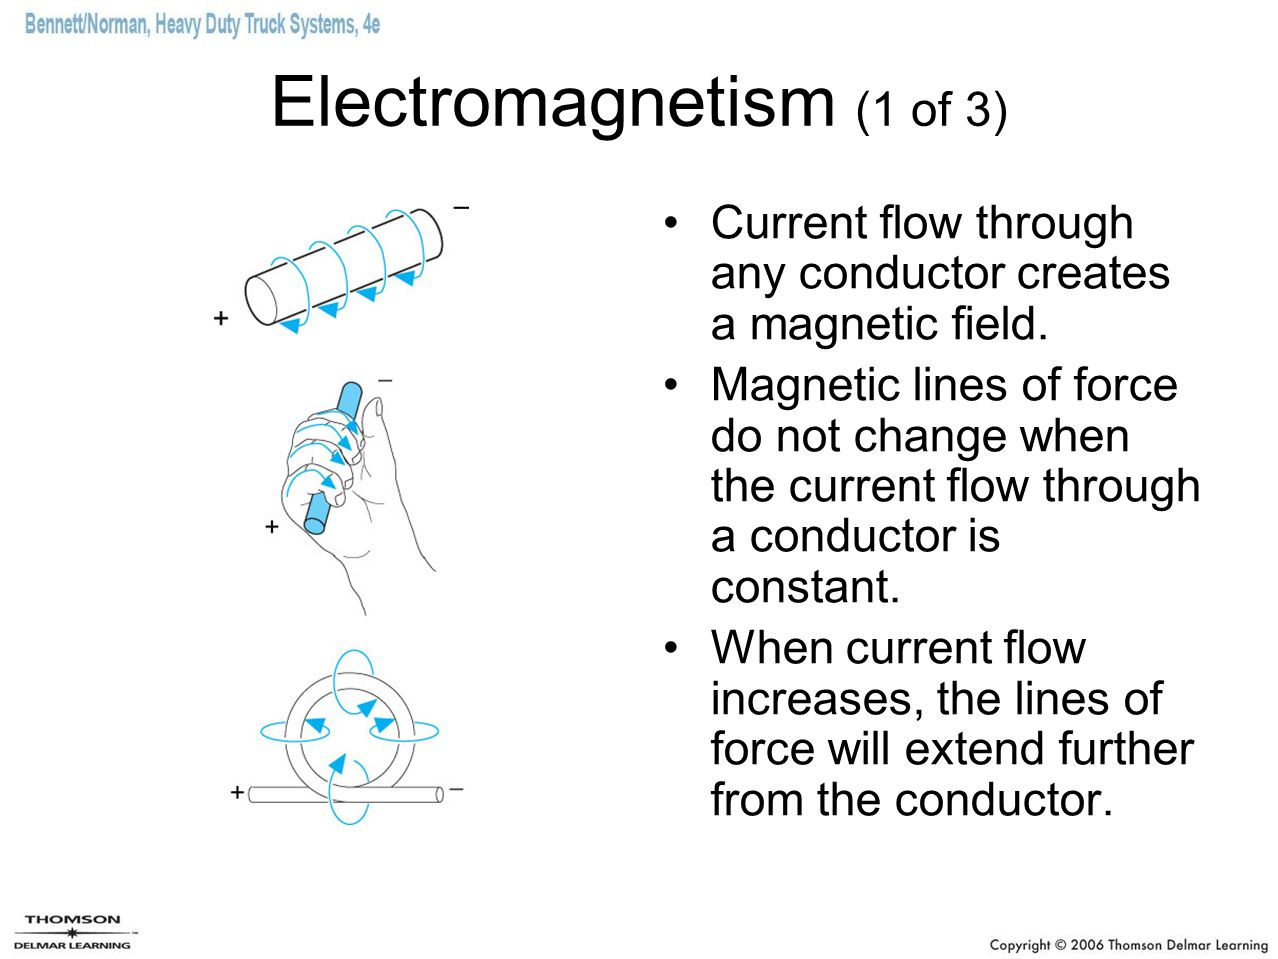 Electromagnetism (1 of 3)